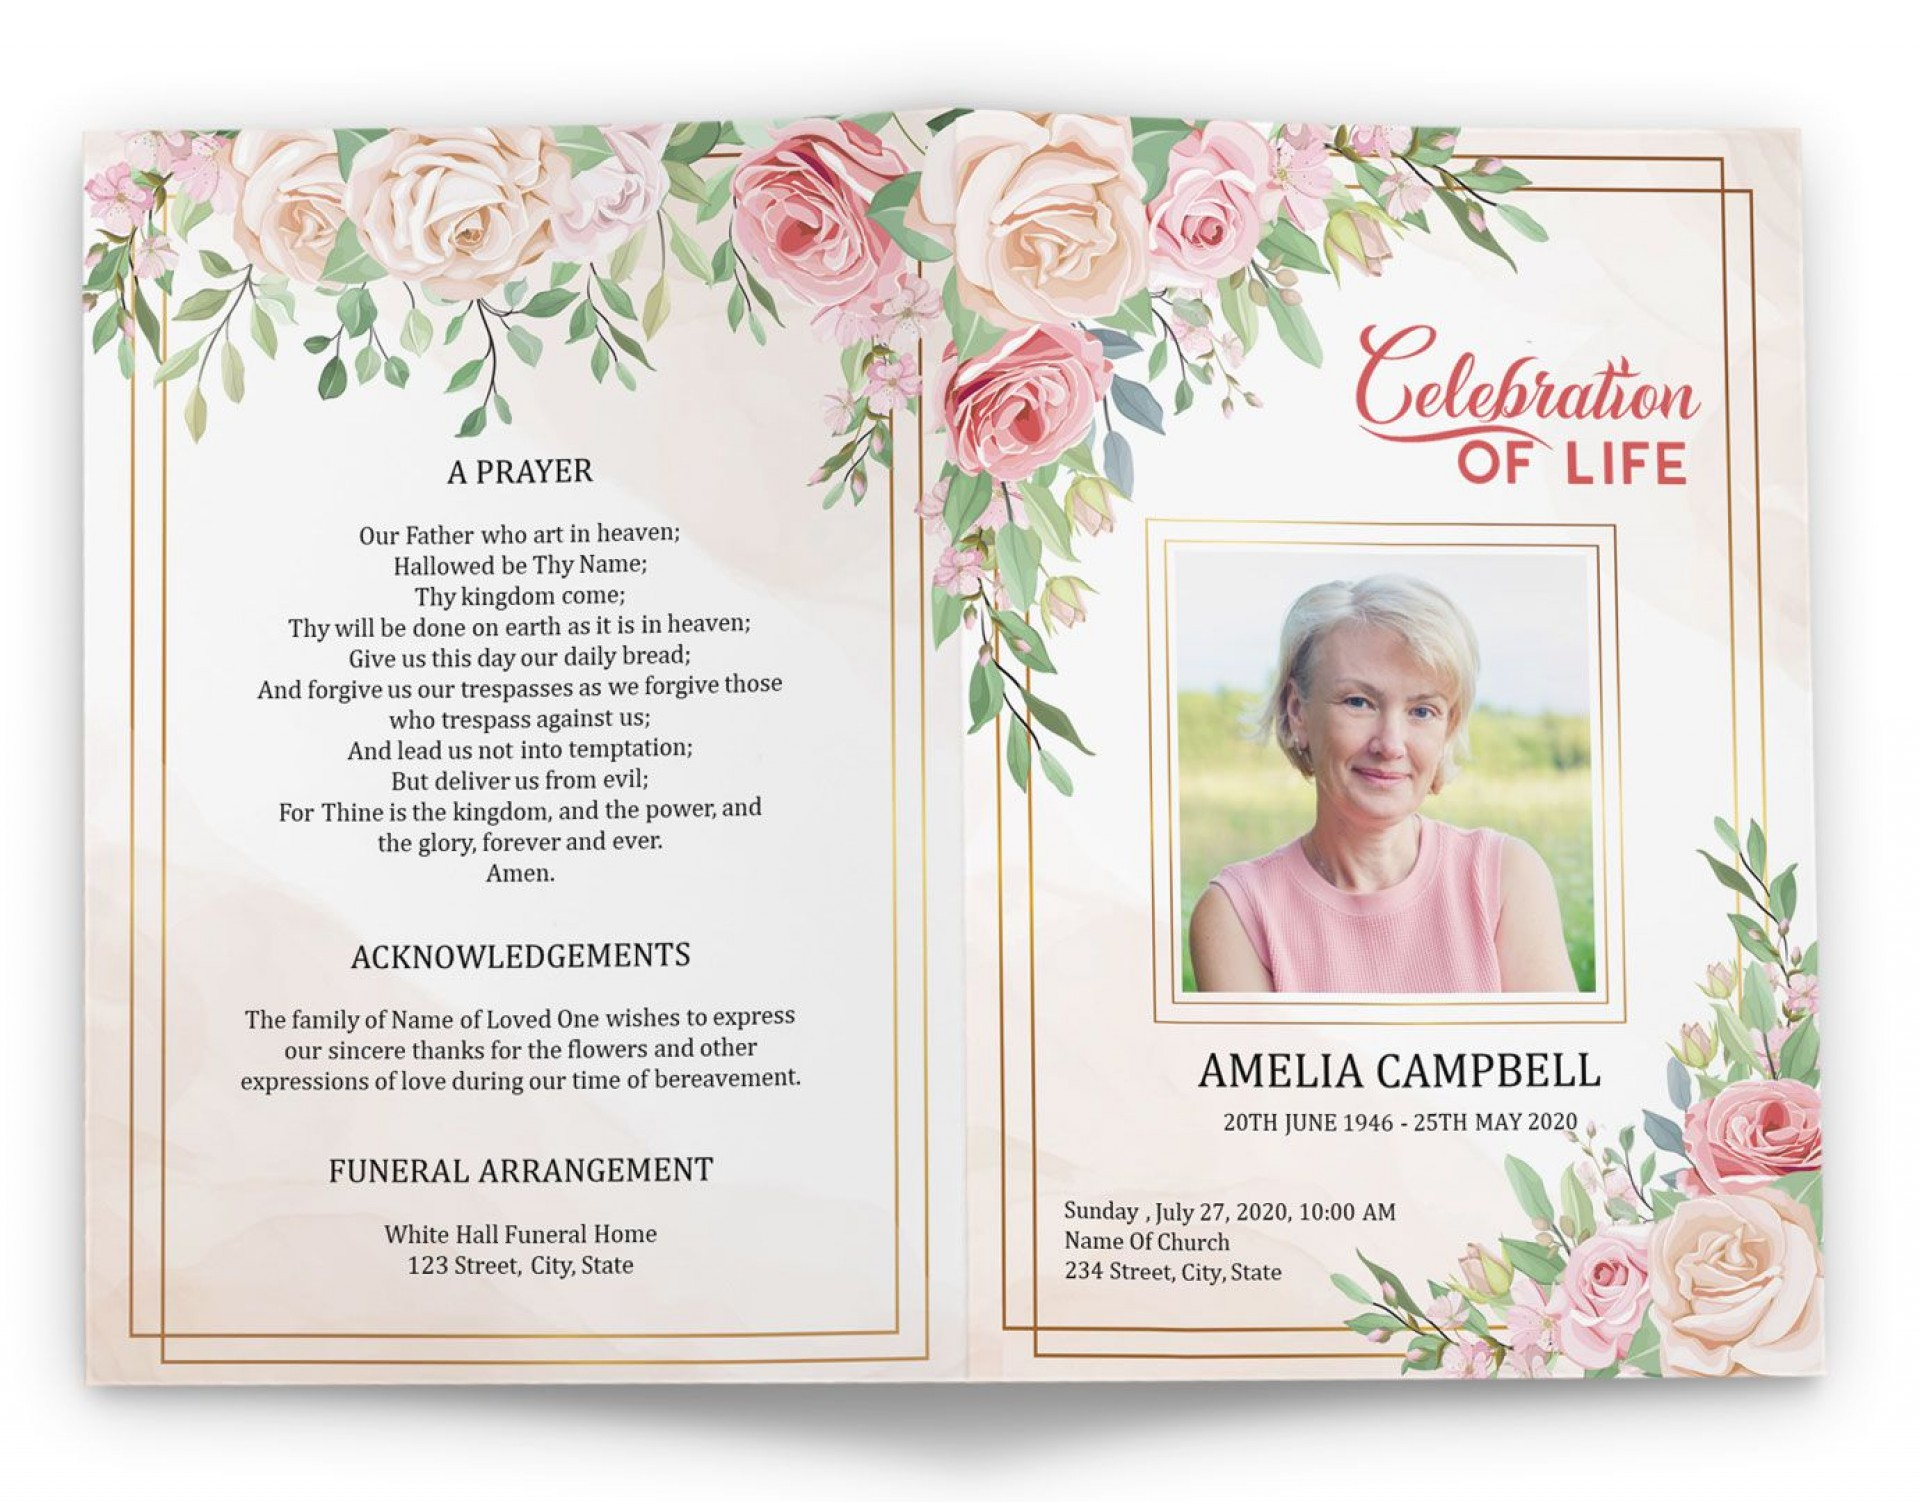 Celebration Of Life Program Template Free from www.addictionary.org